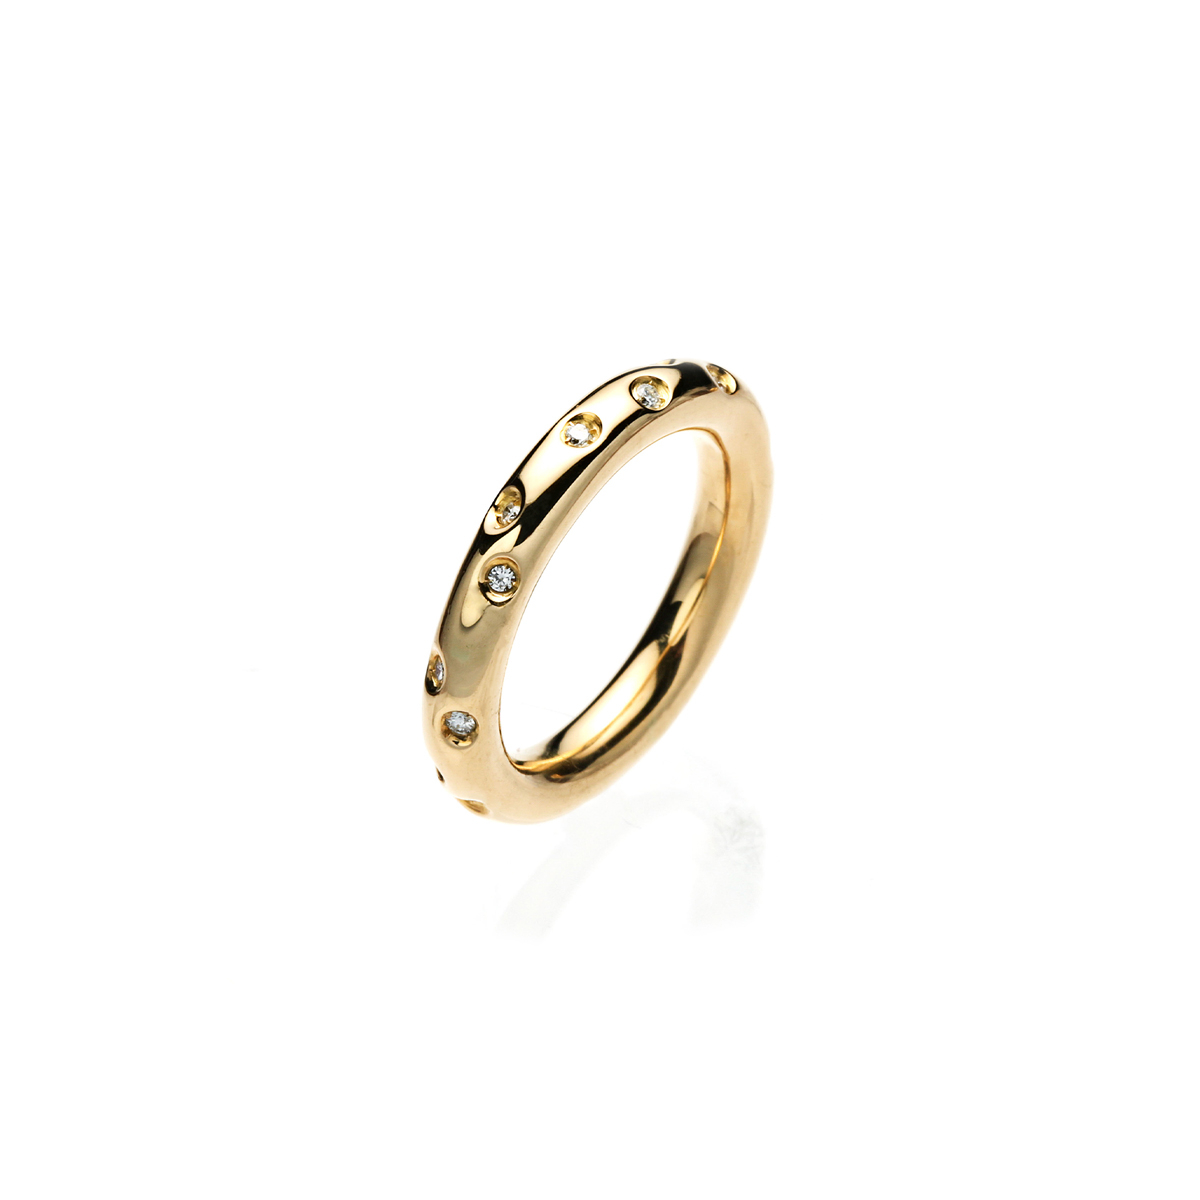 Polished Yellow Gold Ring with Round Diamonds